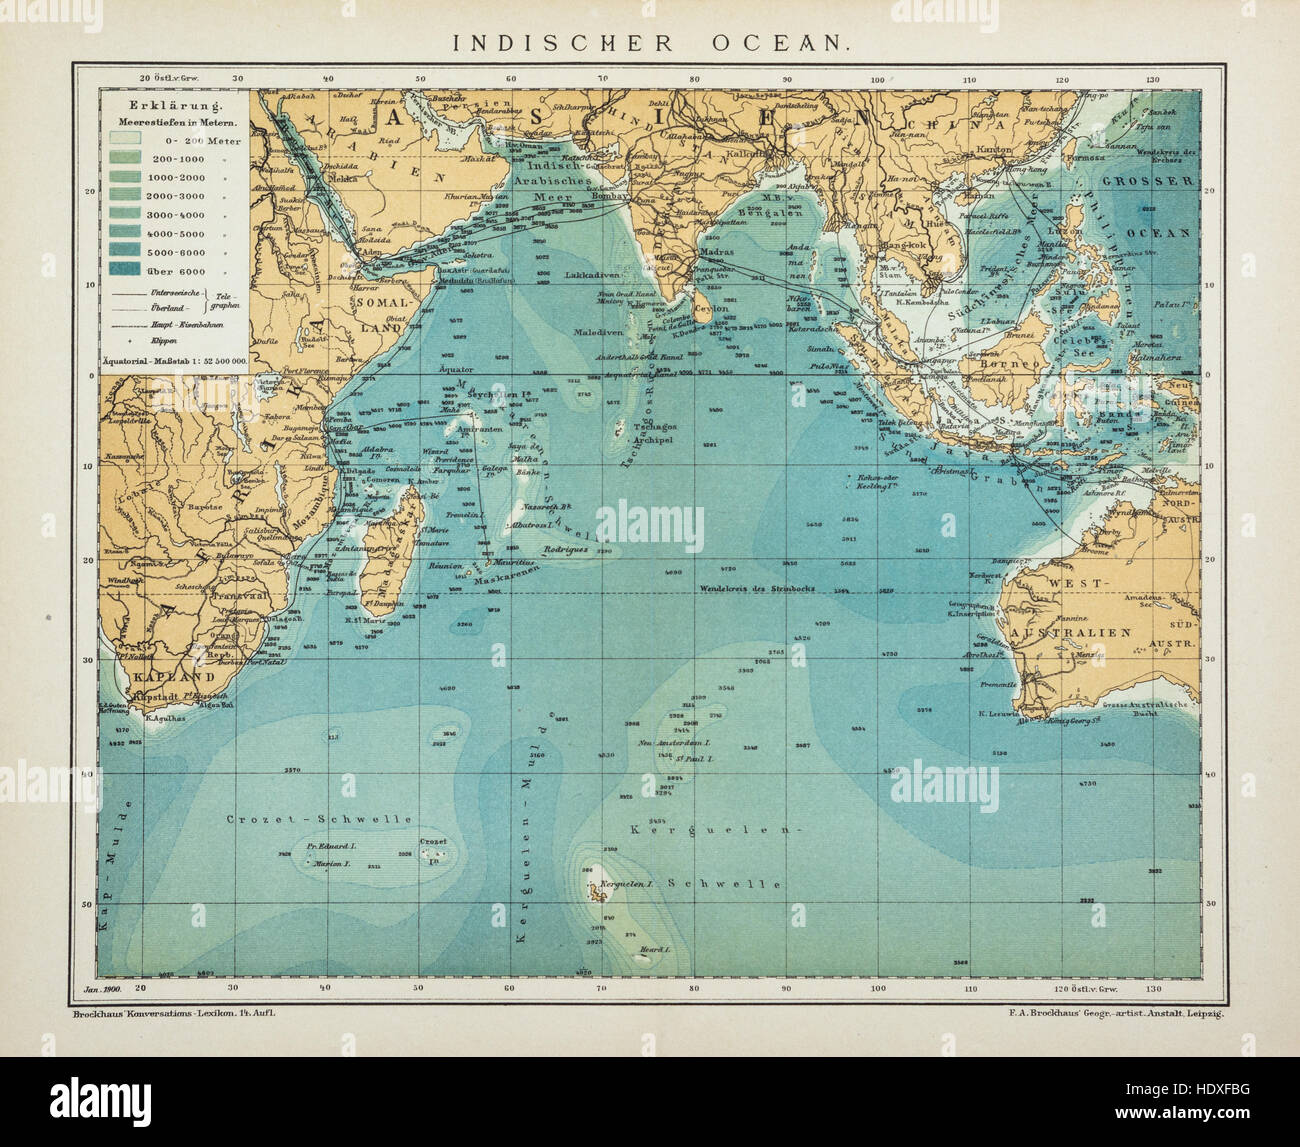 Vintage Look Indian Ocean Old, Antique Map, Vintage Look Stock Photo - Alamy